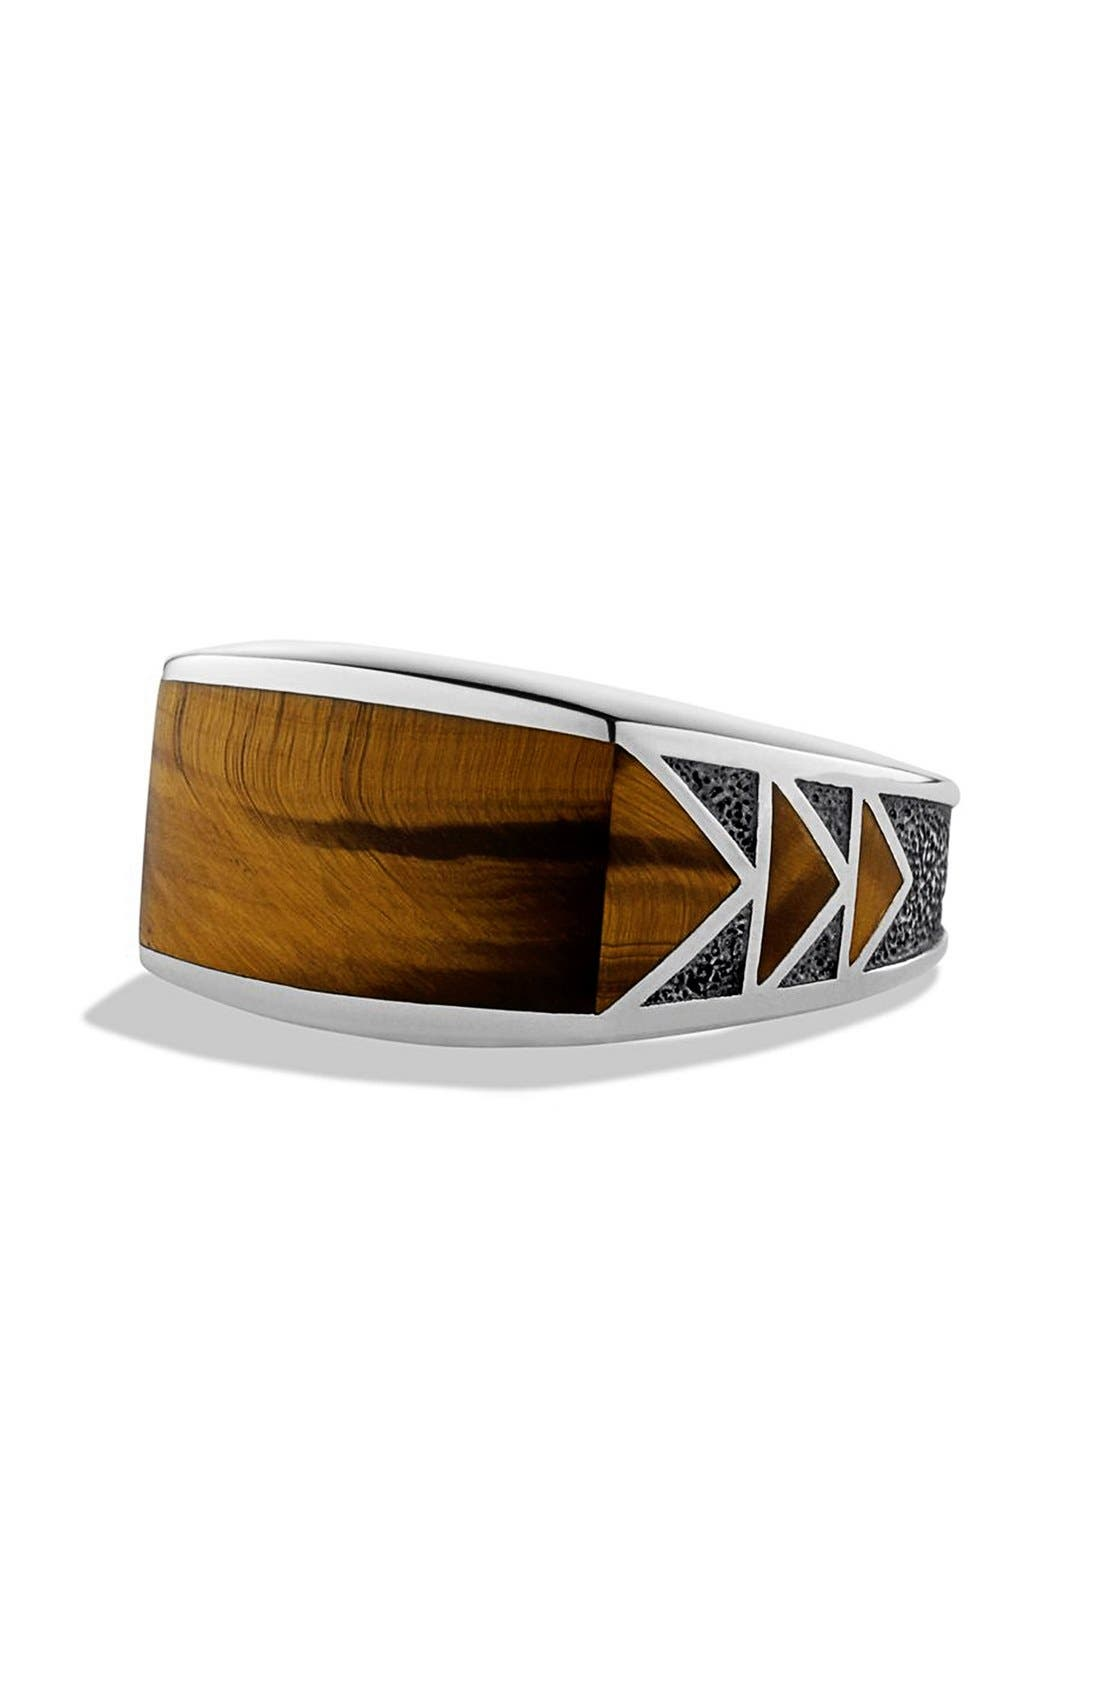 Alternate Image 1 Selected - David Yurman 'Frontier' Ring with Tiger's Eye